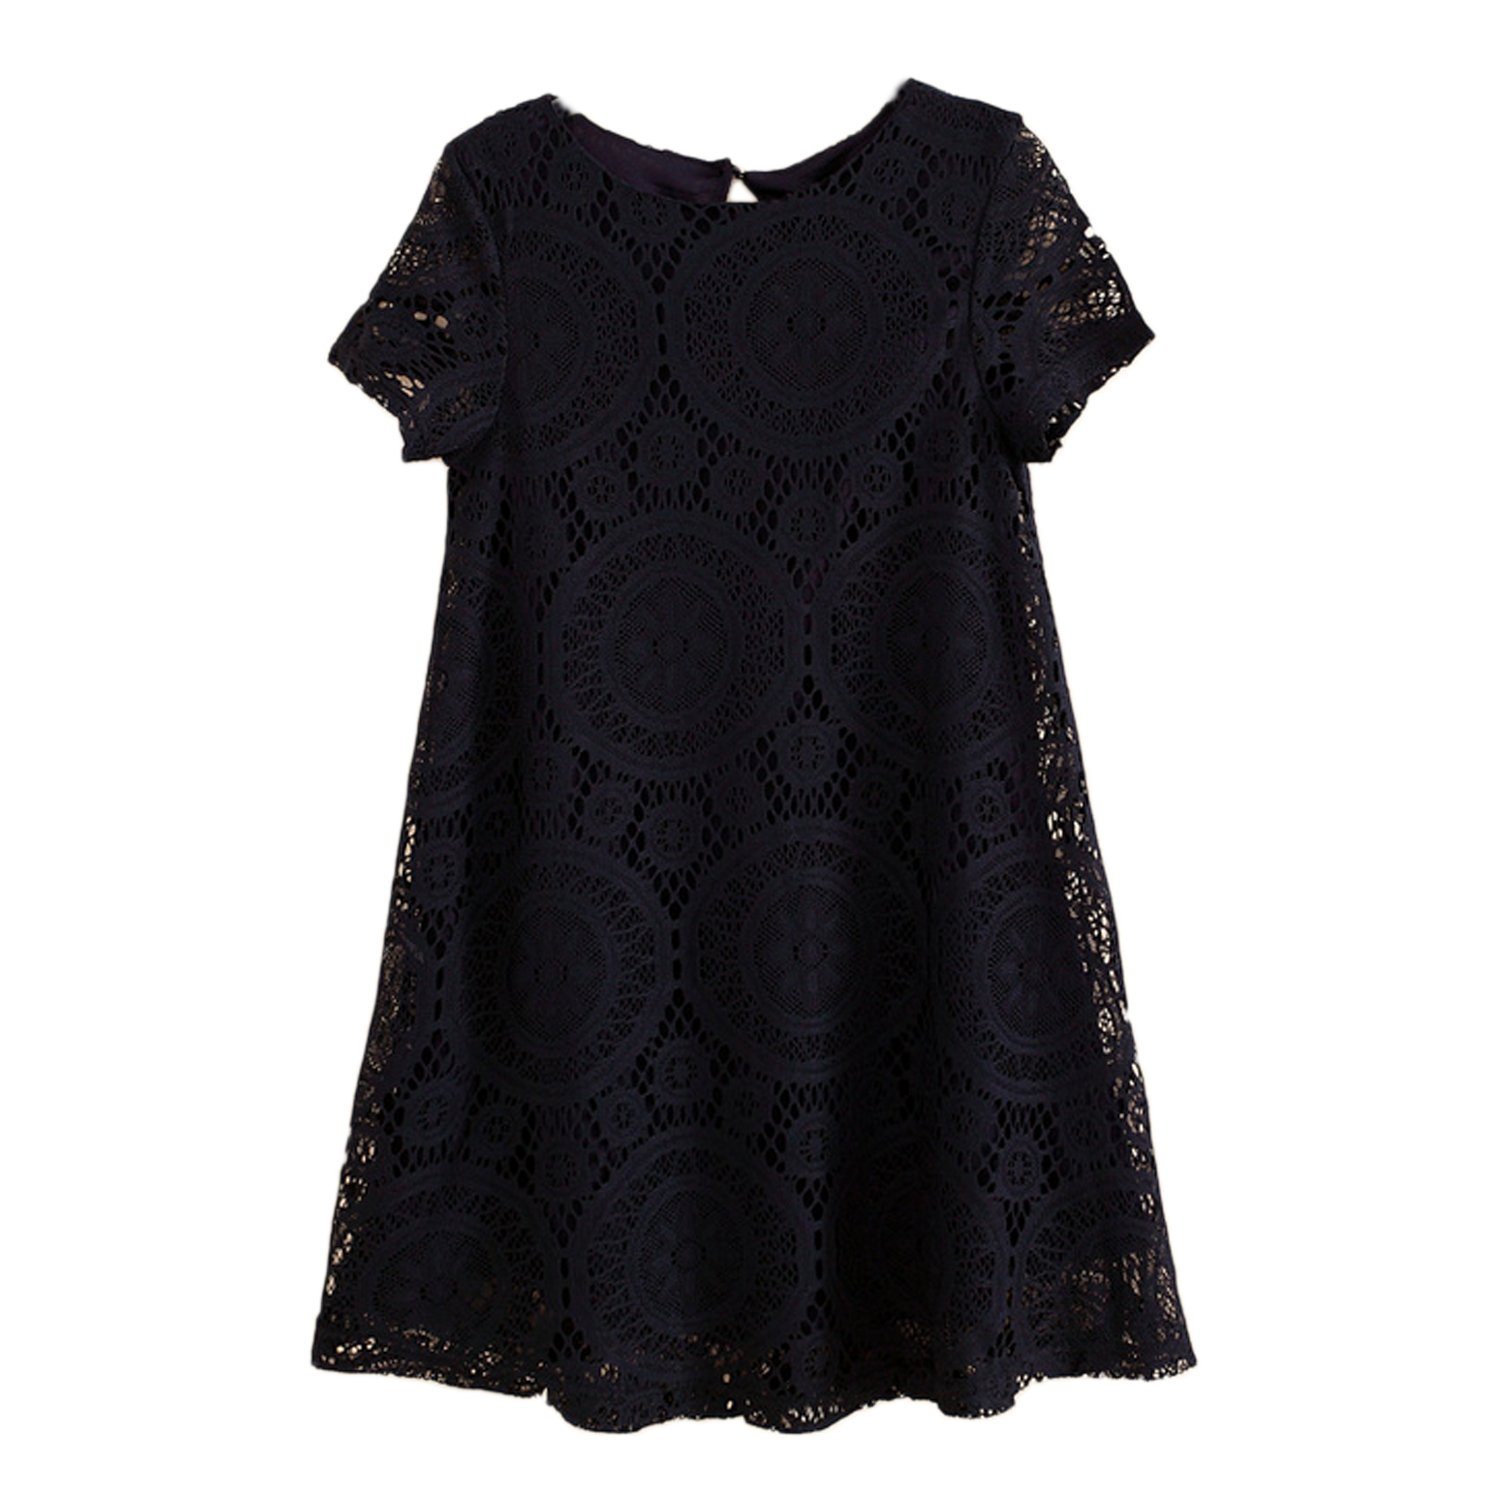 Nonbrand Womens Lace Dress Winter Party Prom Vintage Ladies Crochet Dresses: Amazon.co.uk: Clothing